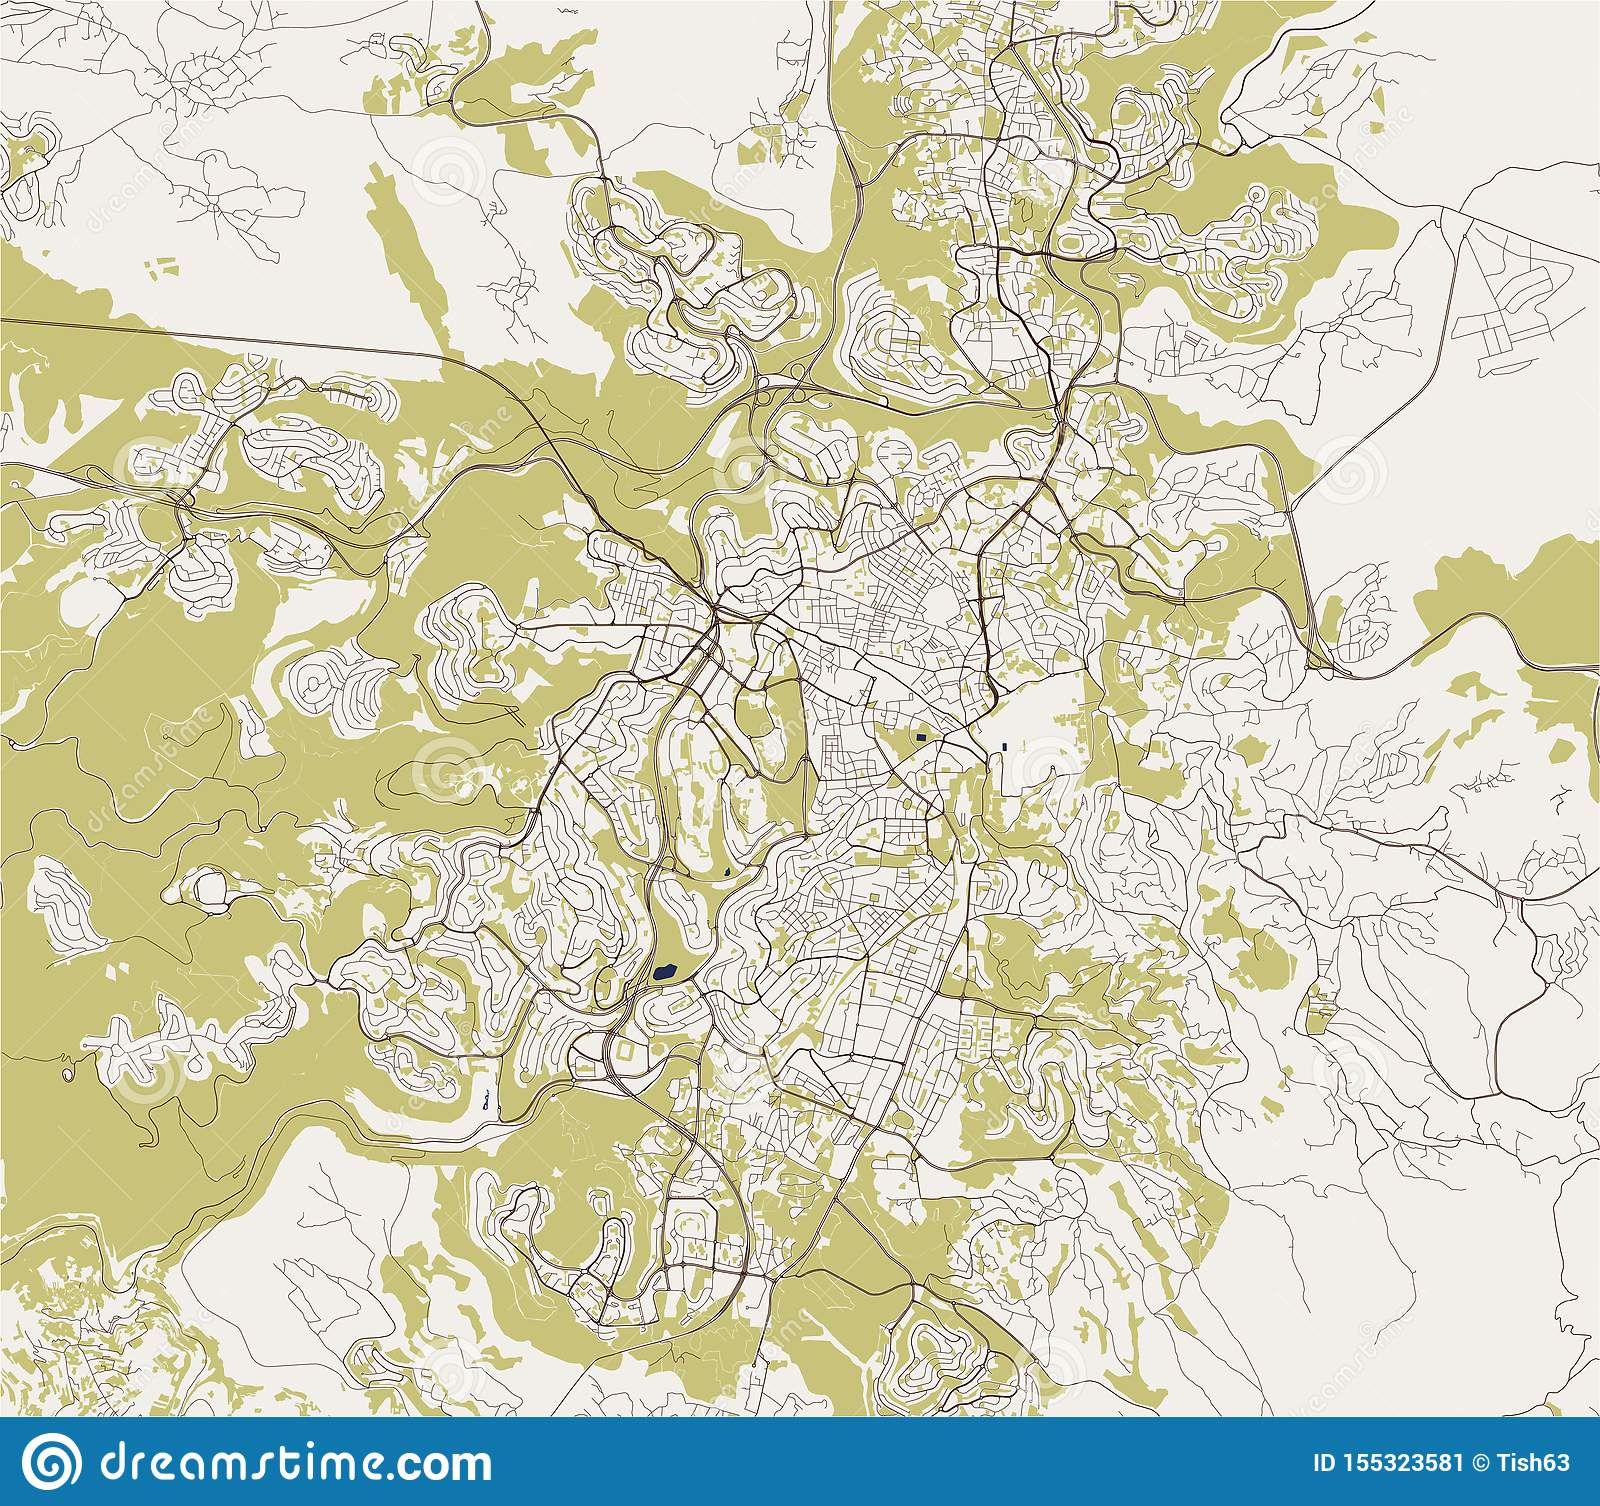 Map Of The City Of Jerusalem, Israel Stock Illustration ...